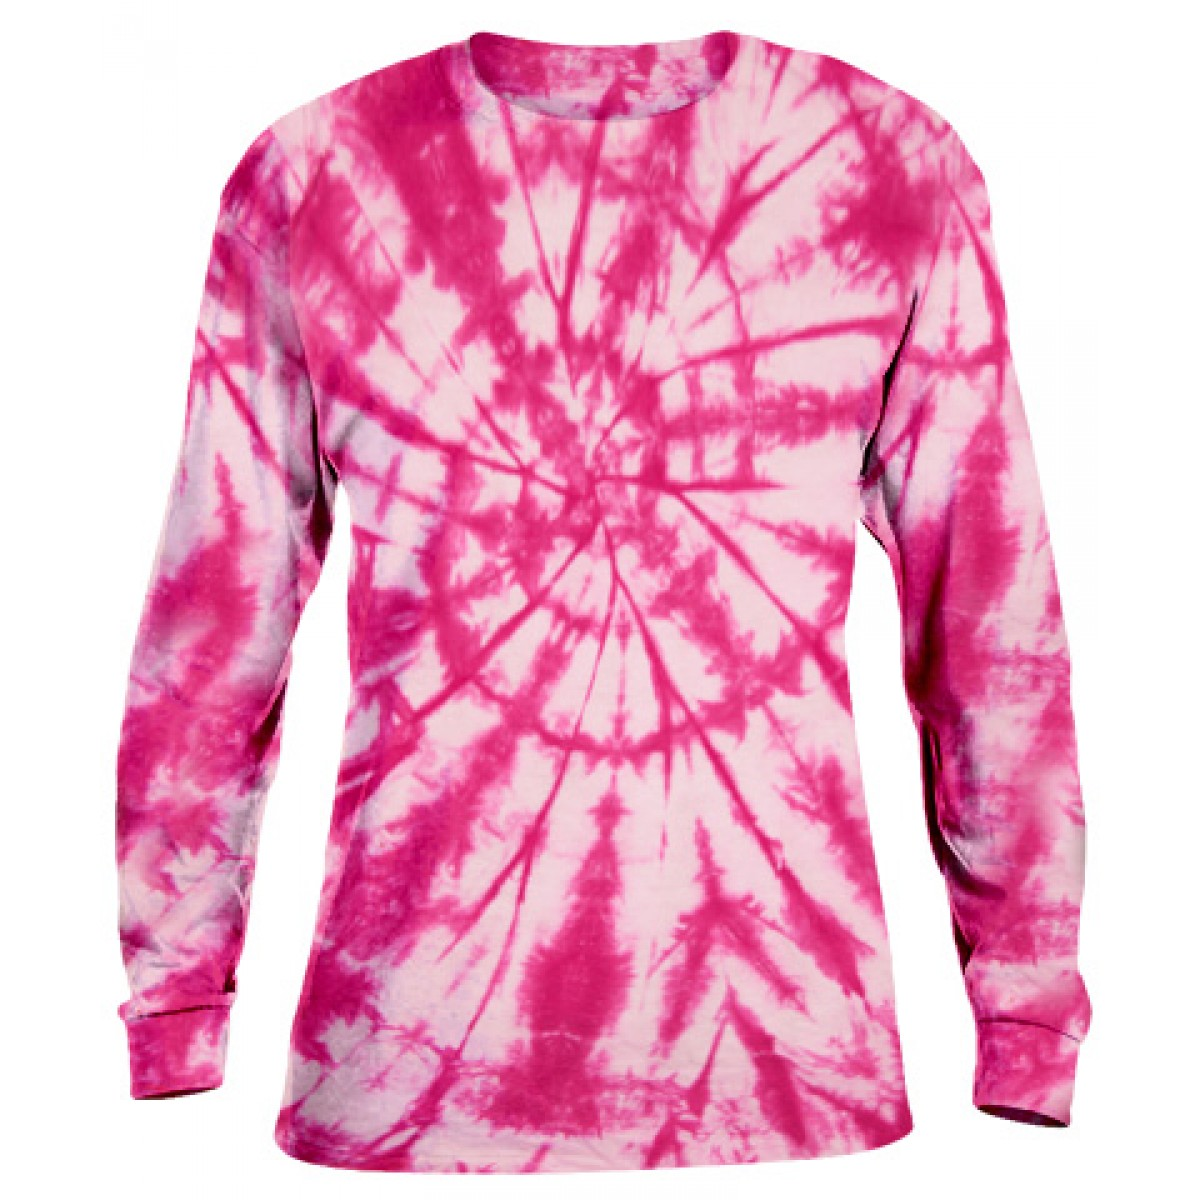 Tie-Dye Long Sleeve Shirt -Fuscia-YL